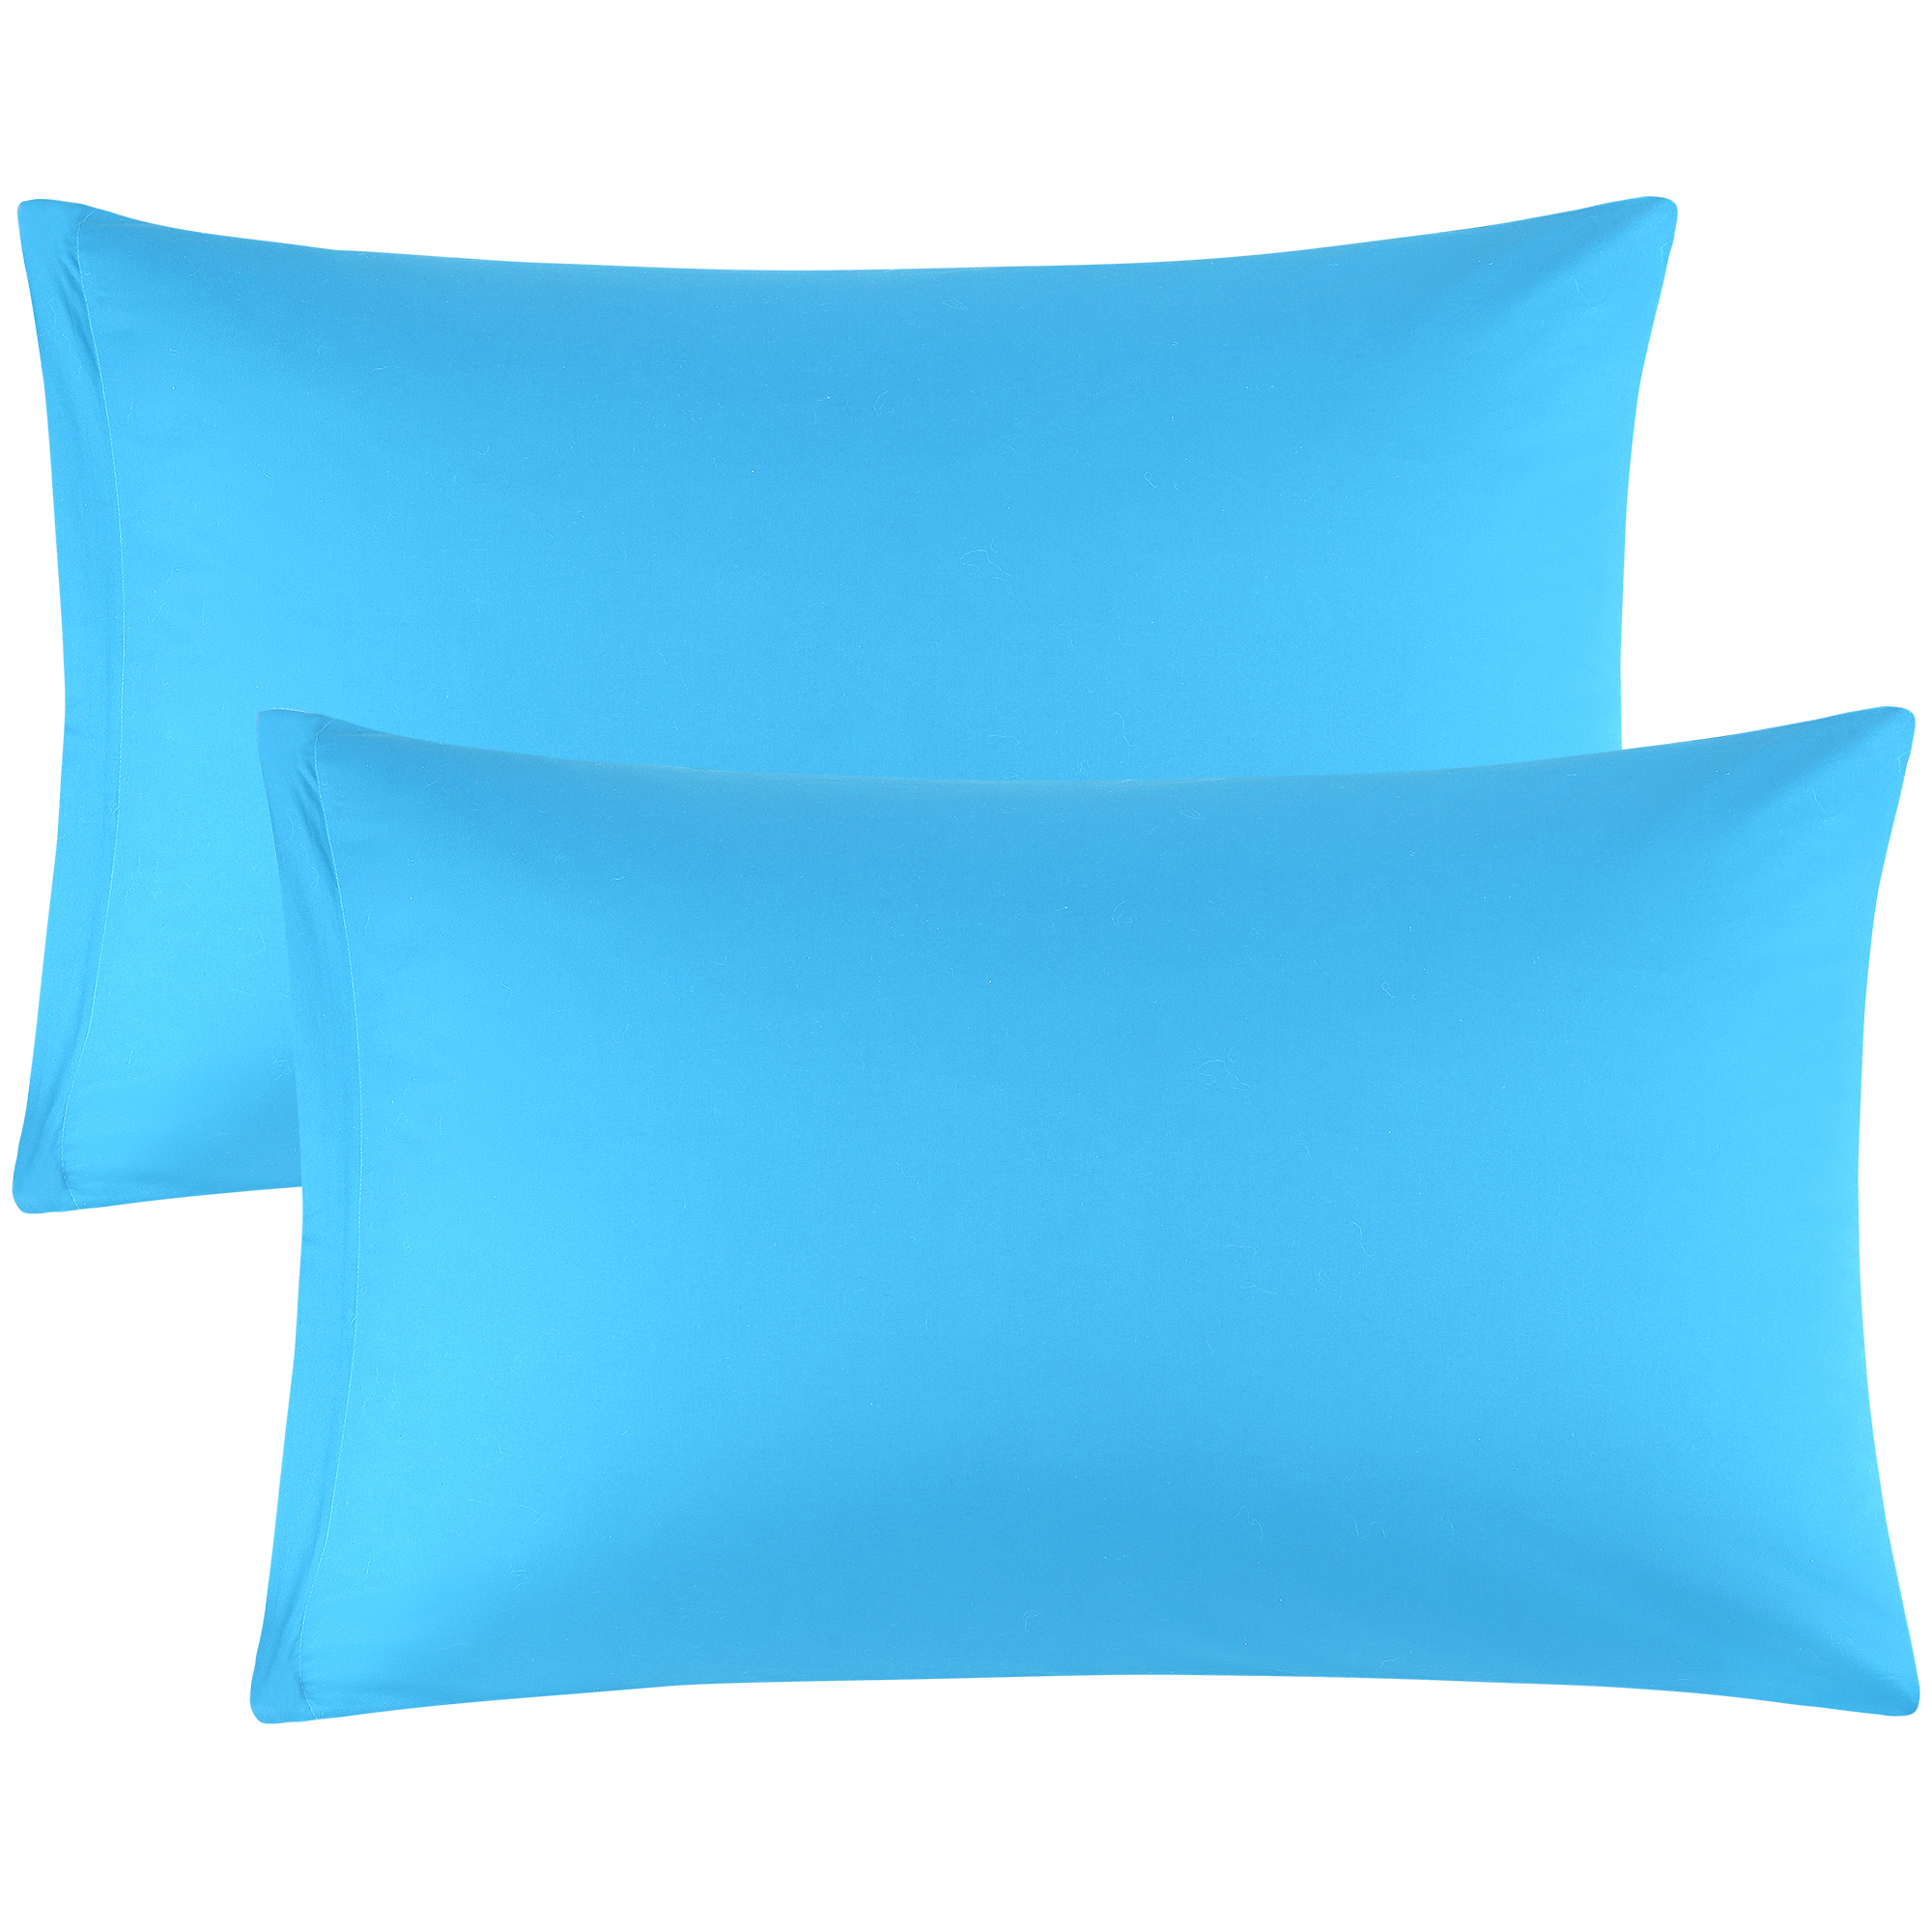 Zippered Cases Pillowcases Covers Egyptian Cotton 2-Pack (20 x 30 Inch, Blue)